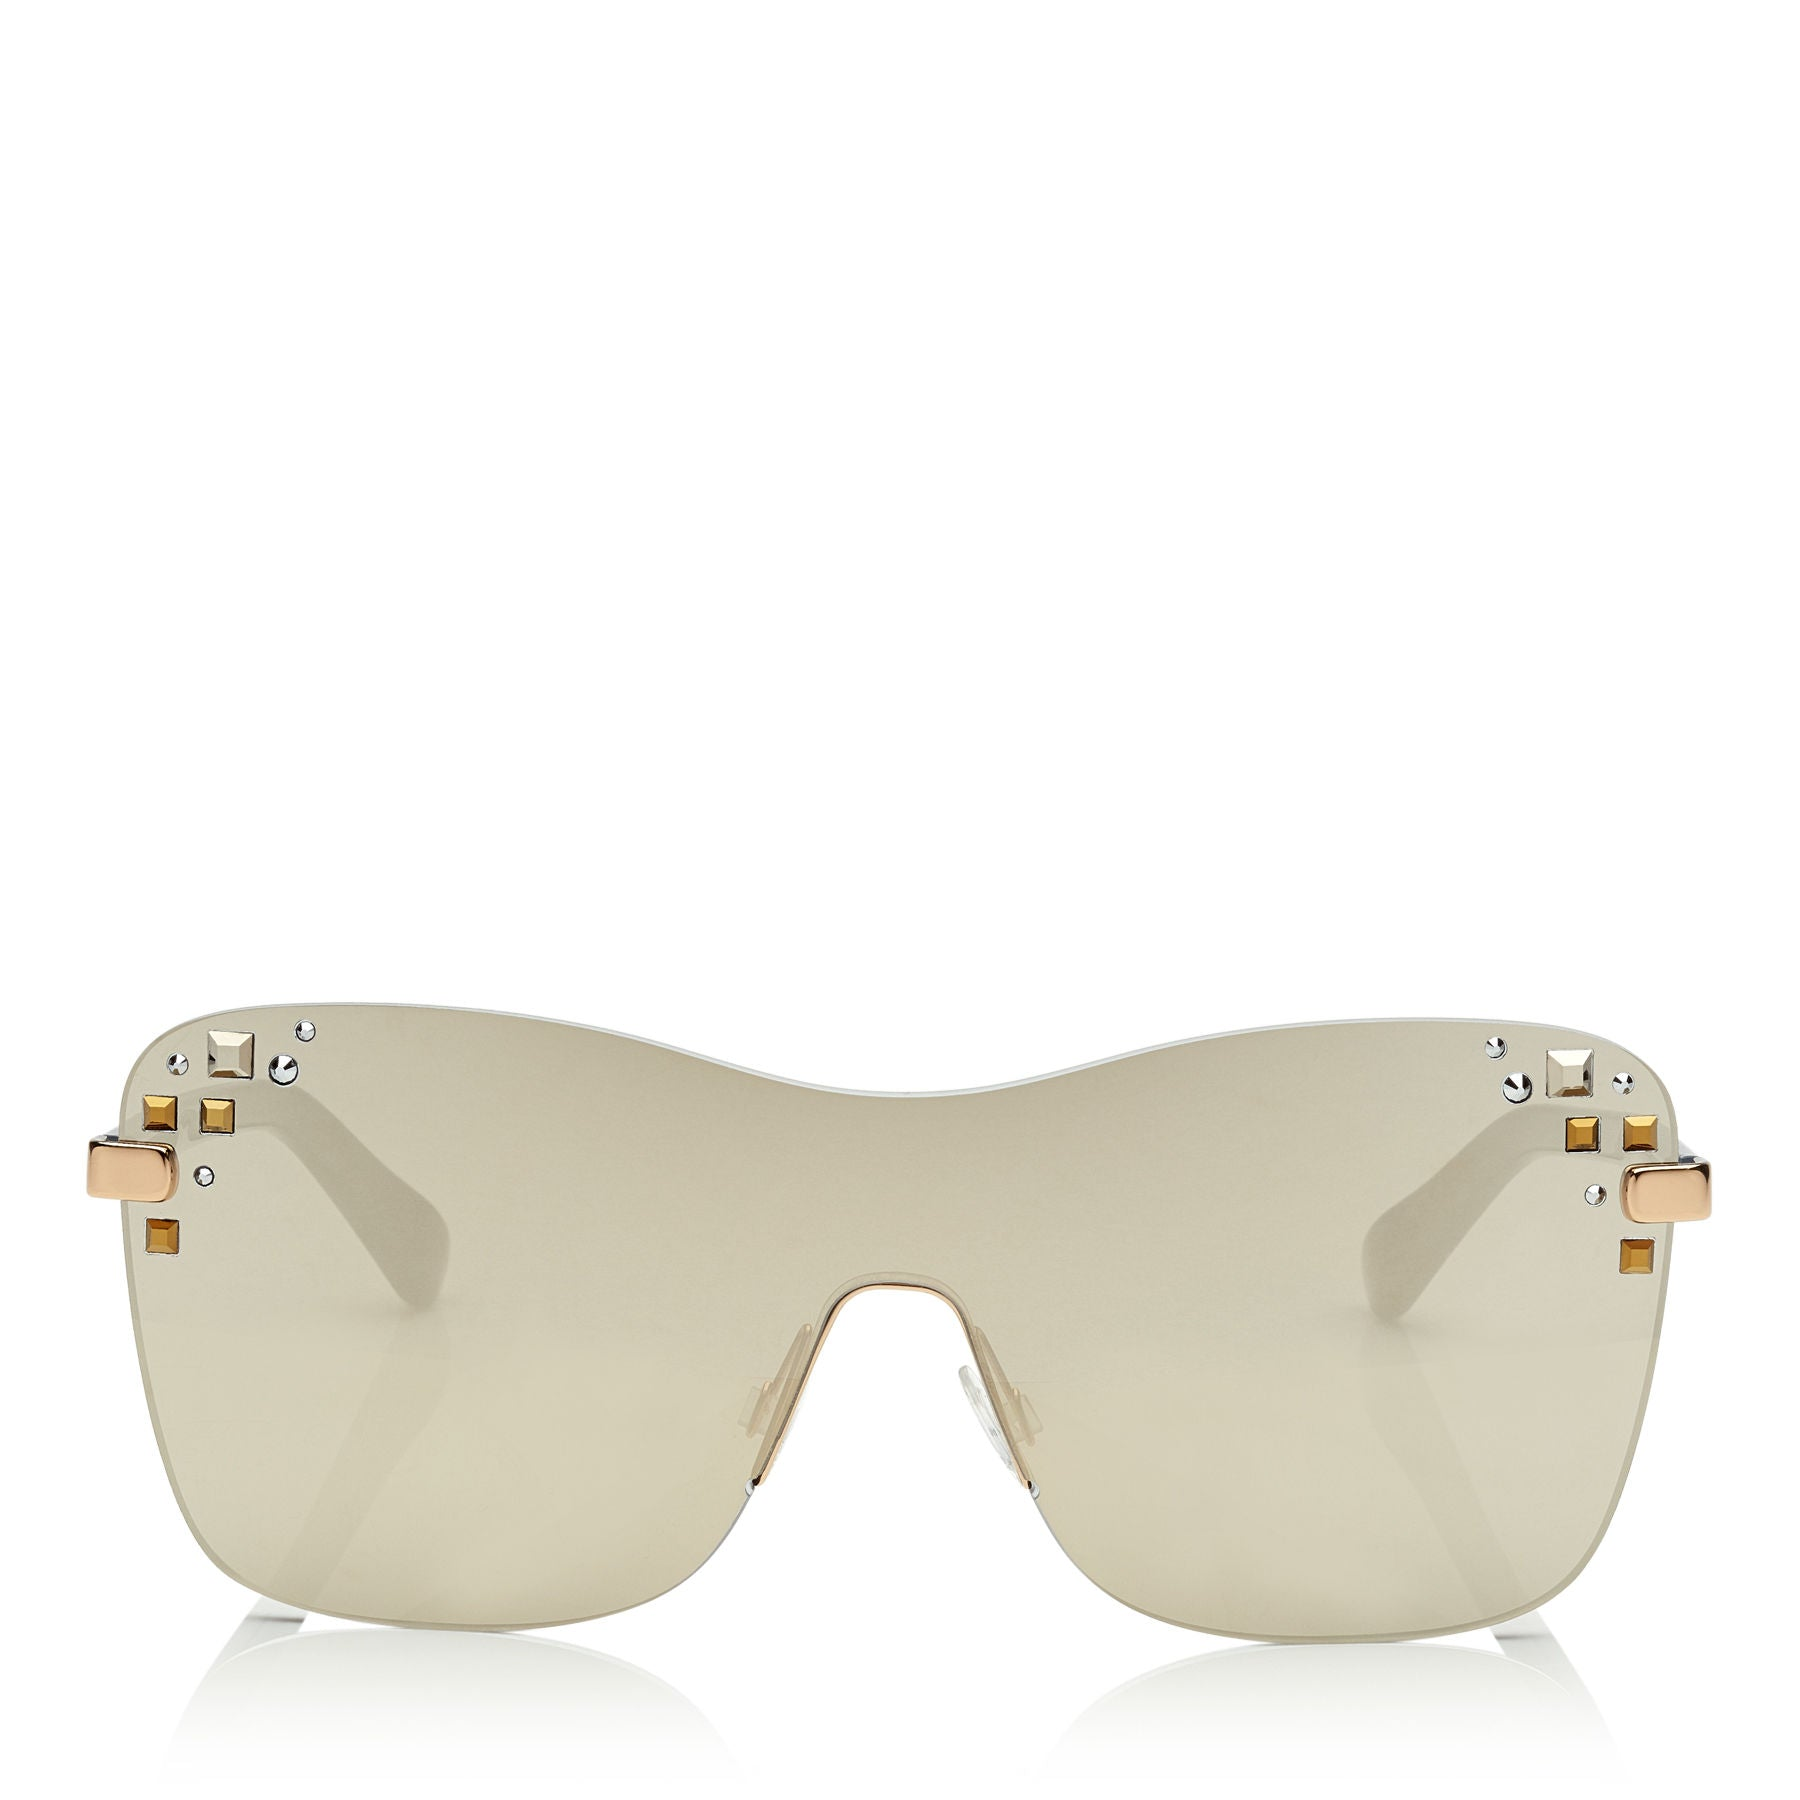 JIMMY CHOO Mask Rose Gold and Grey Round Frame Sunglasses with Swarovski Crystals ITEM NO. MASKS99E138